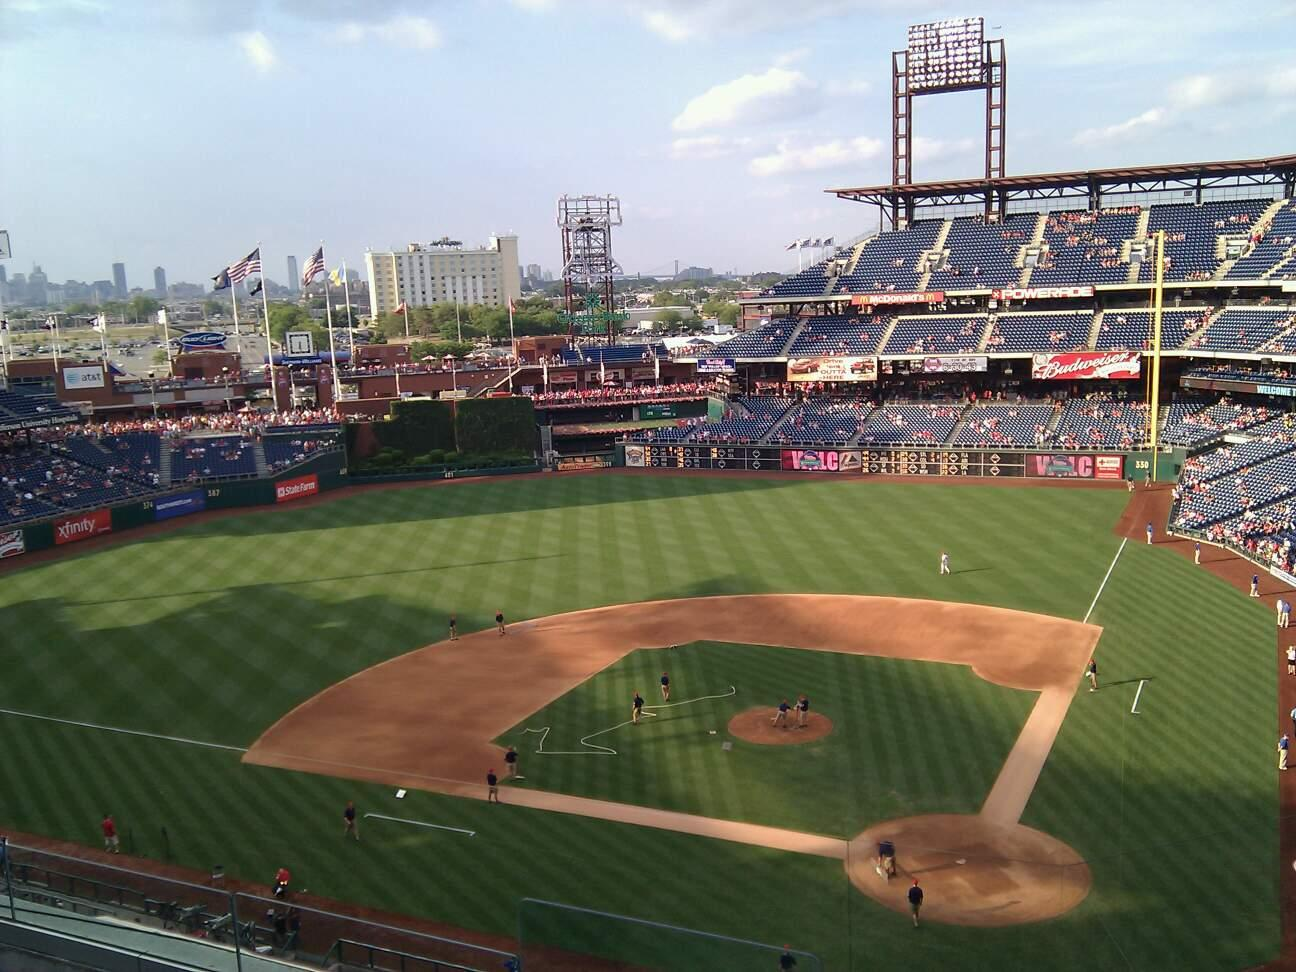 Citizens Bank Park Section 323 Row 5 Seat 10